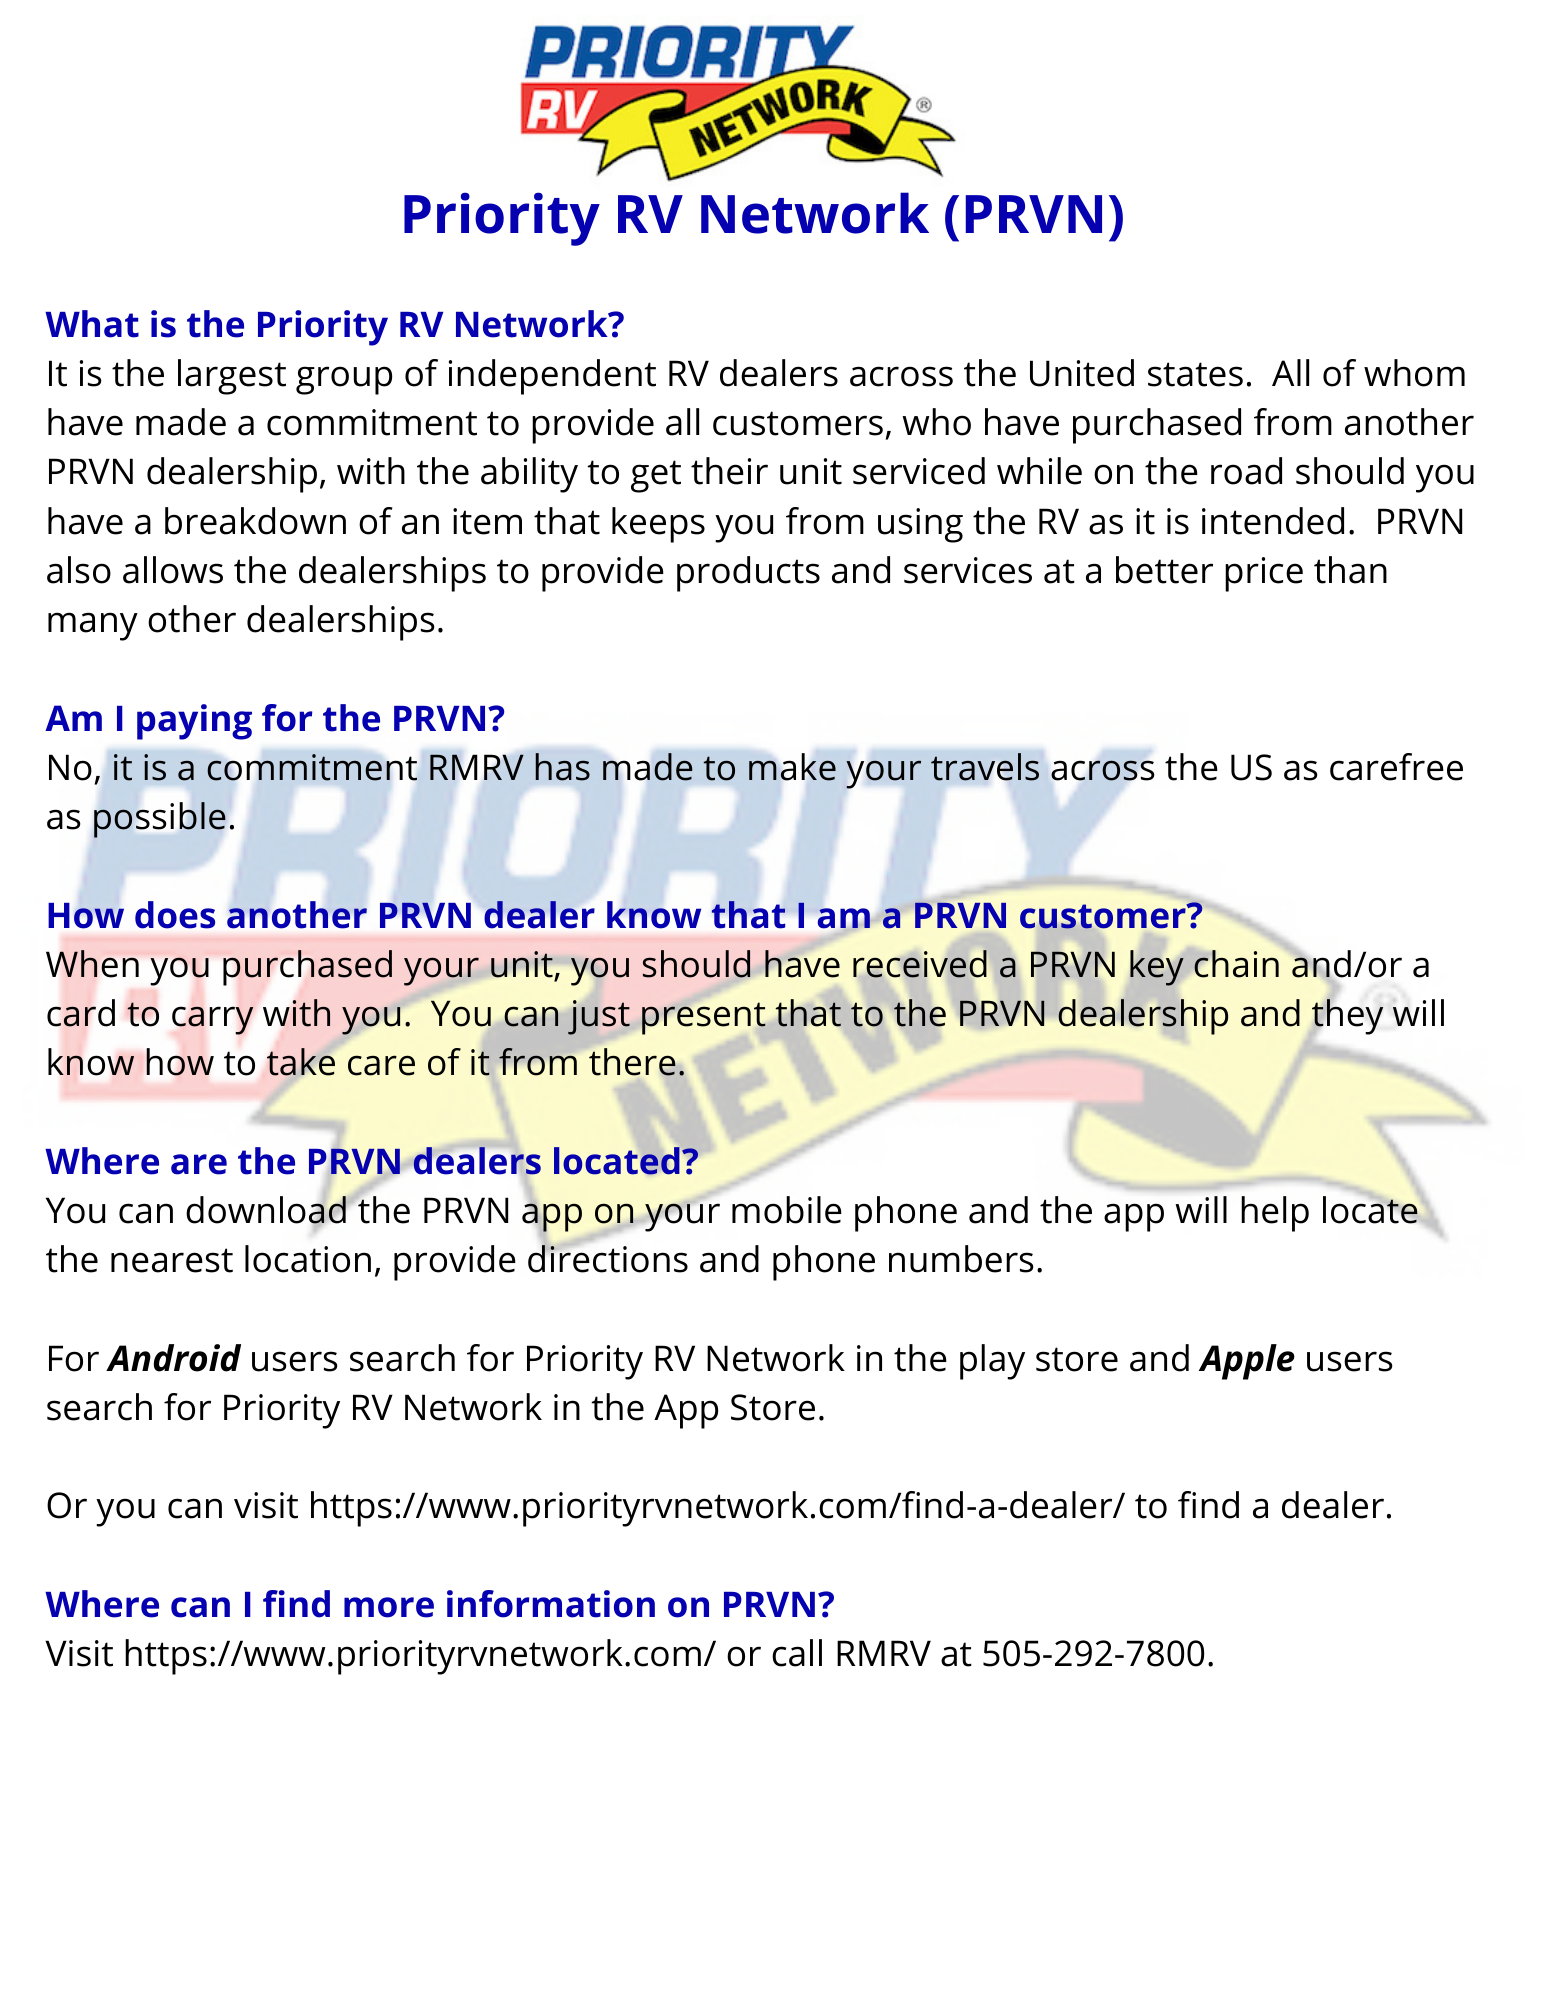 FAQ's About the Priority RV Network